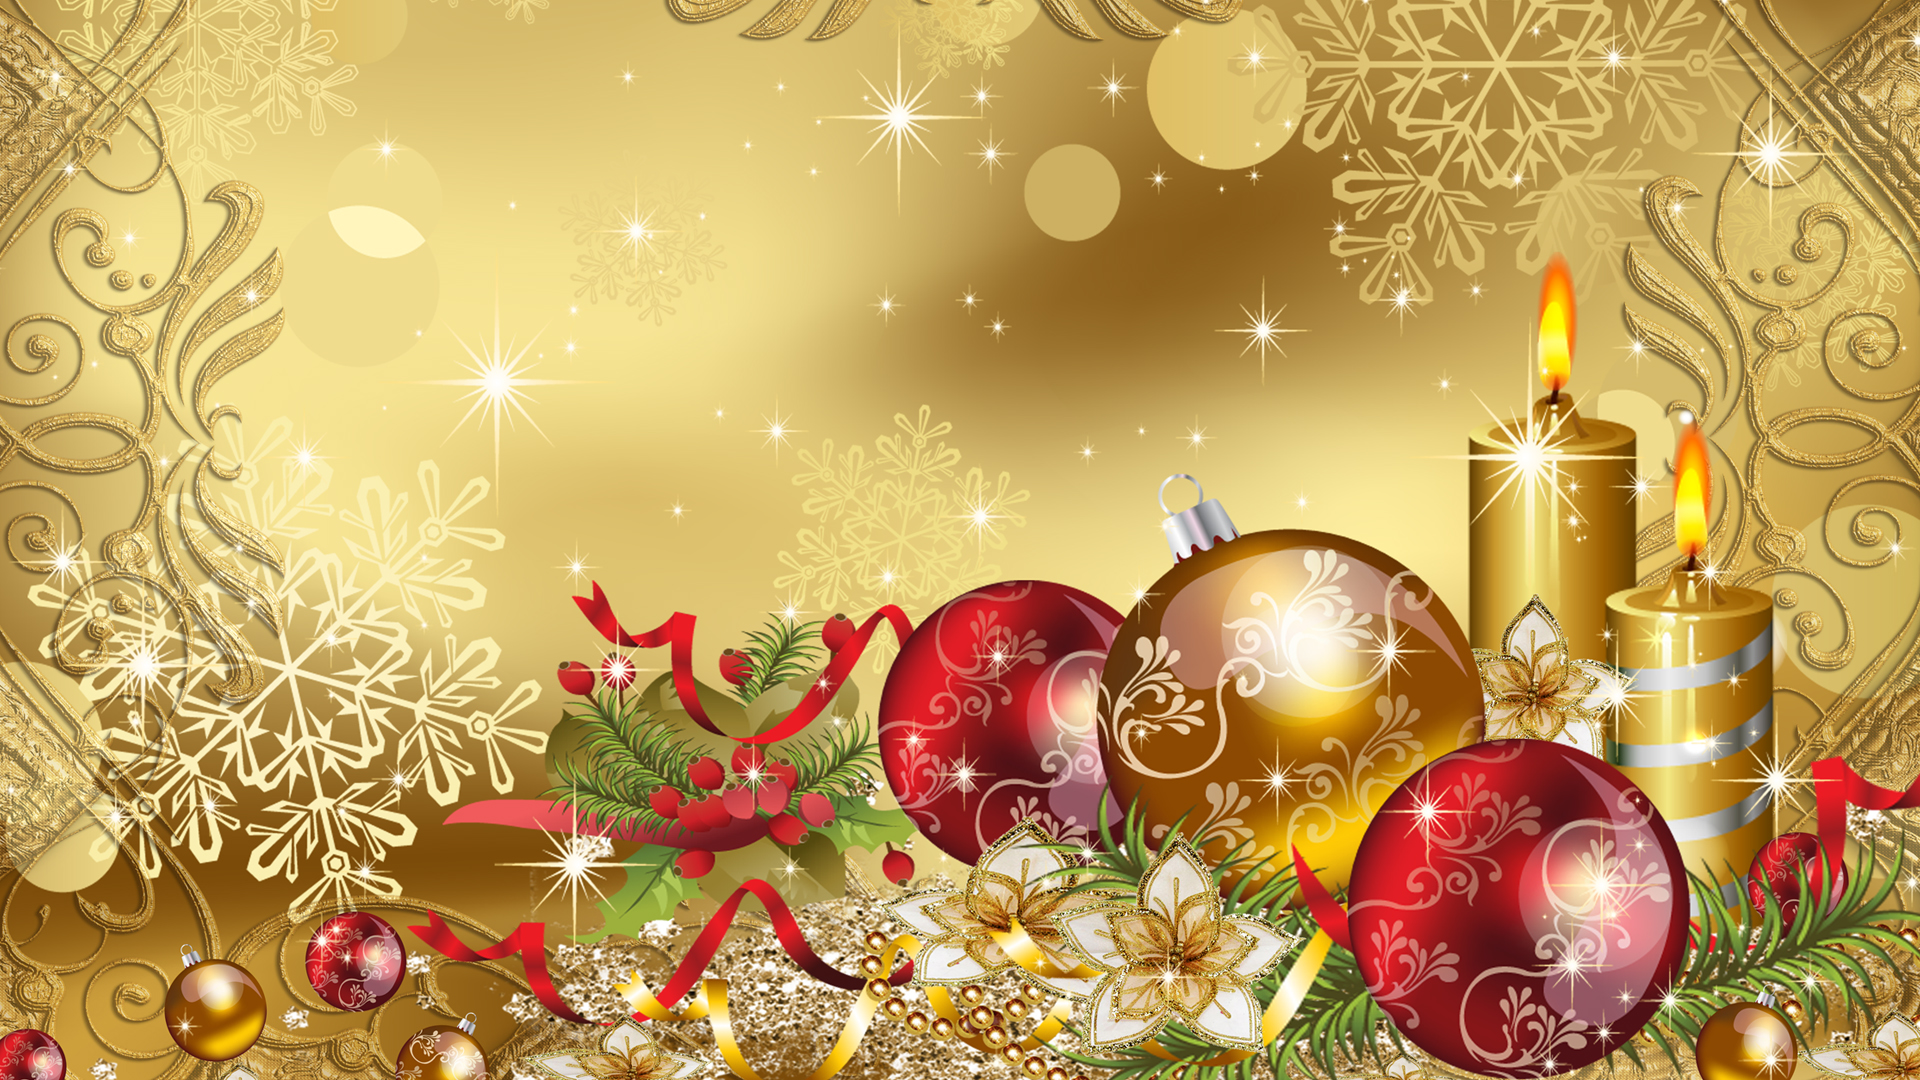 Christmas Wallpaper For Desktop 1920x1080